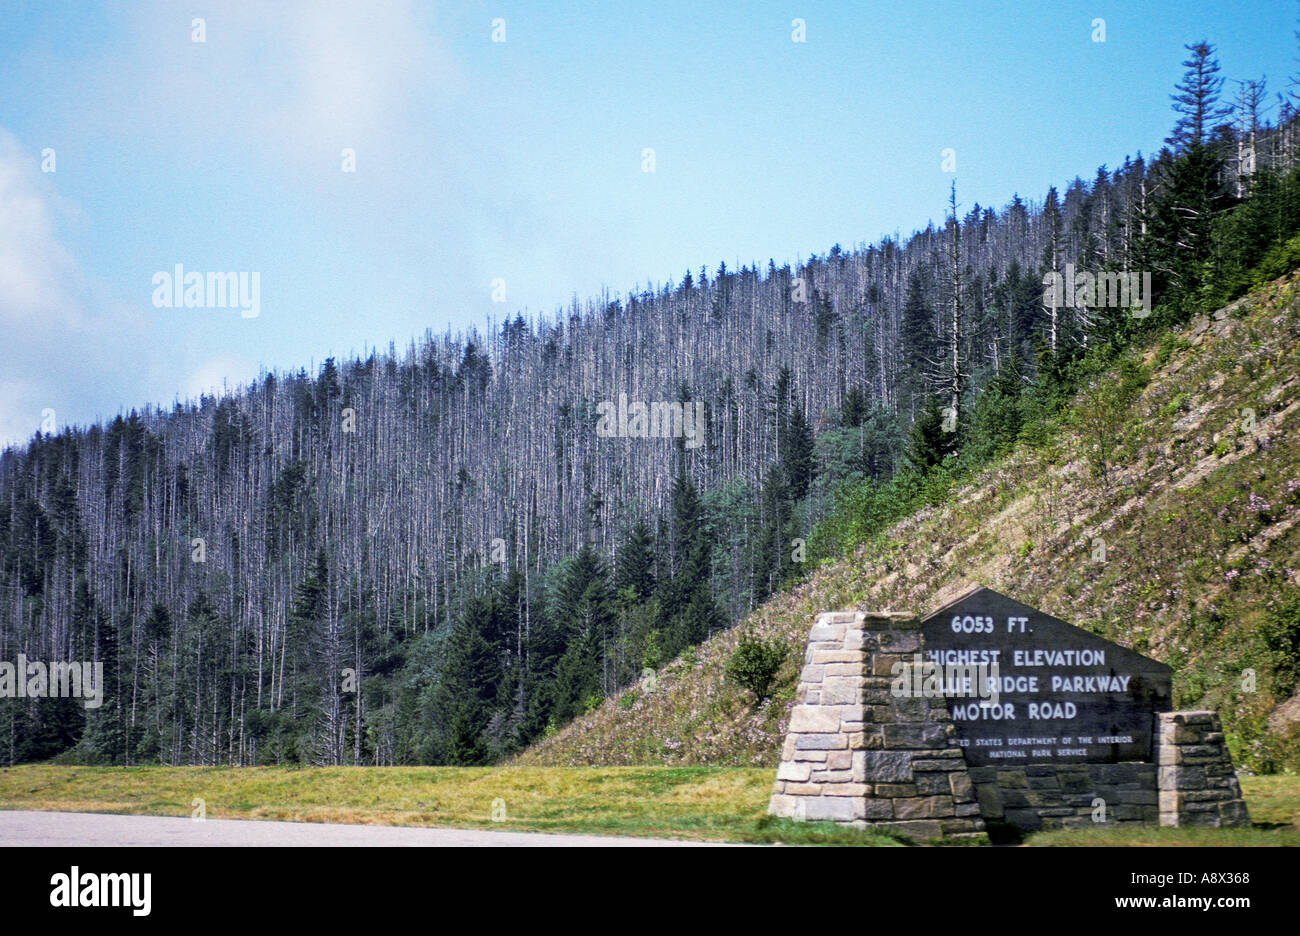 North carolina richland balsam highest point on blue ridge parkway north carolina richland balsam highest point on blue ridge parkway red spruce and fraser fir trees killed by acid rain publicscrutiny Image collections